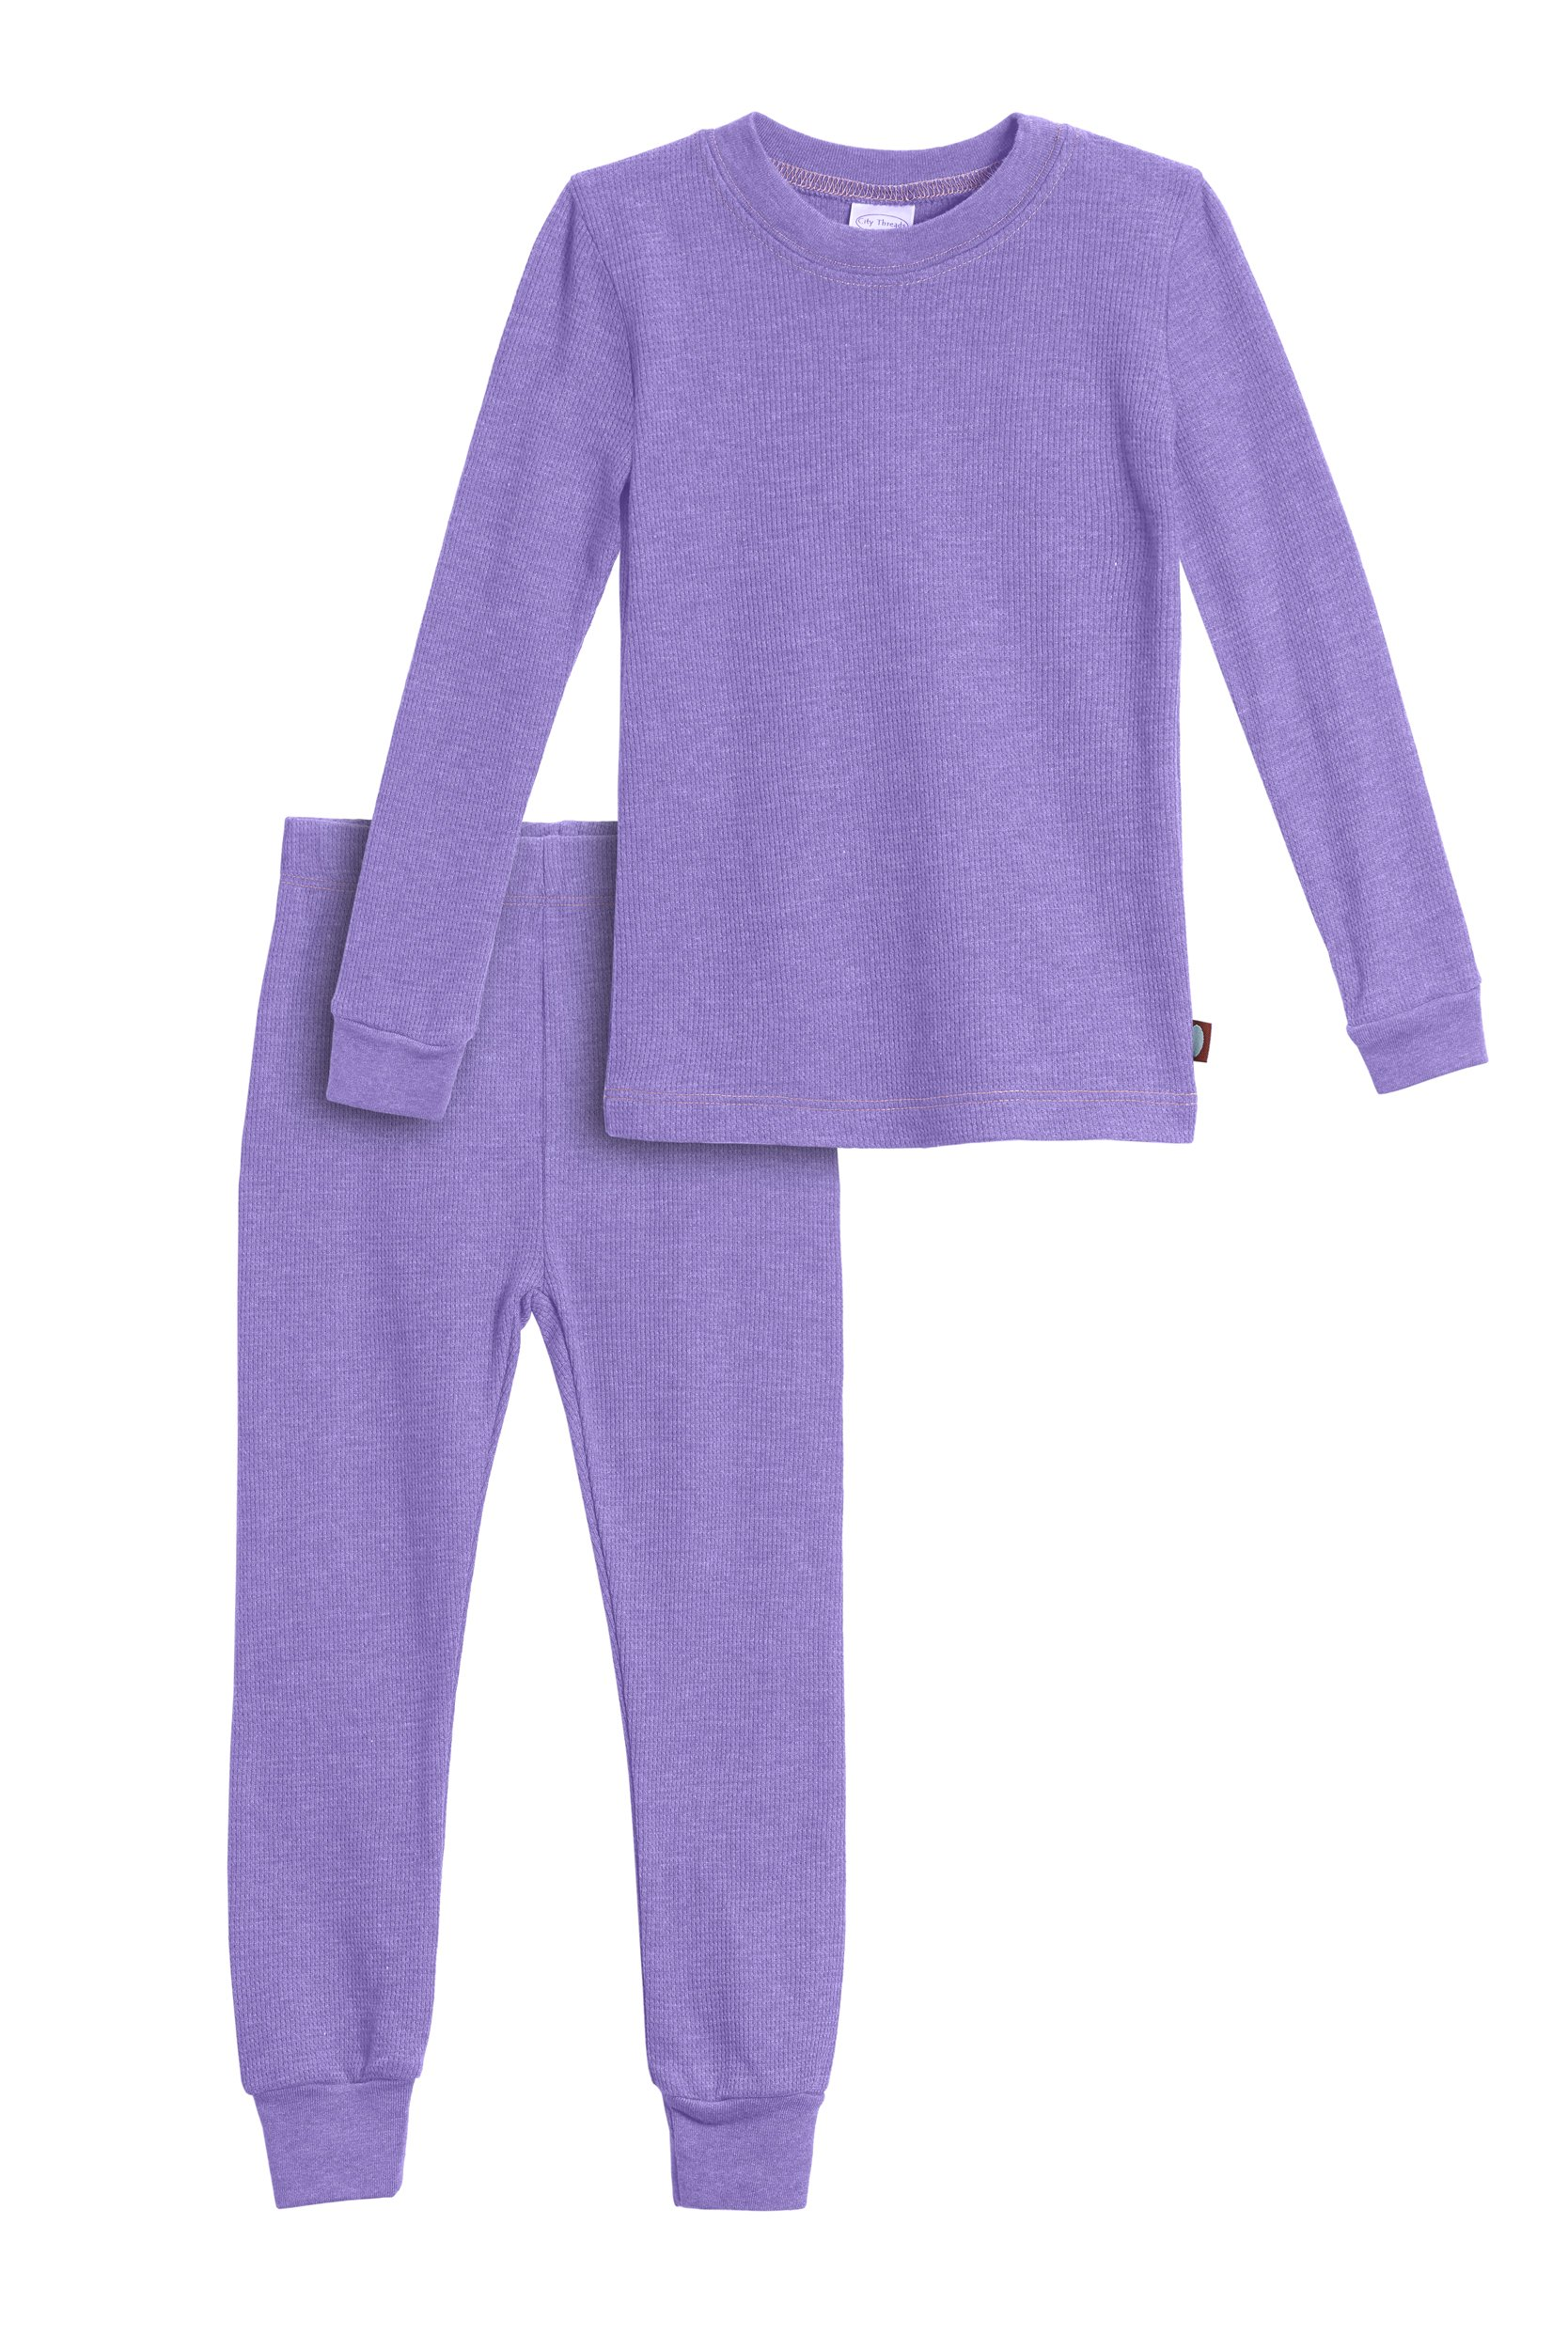 City Threads Little Girls Thermal Underwear Set Perfect for Sensitive Skin SPD Sensory Friendly, Deep Purple- 3T